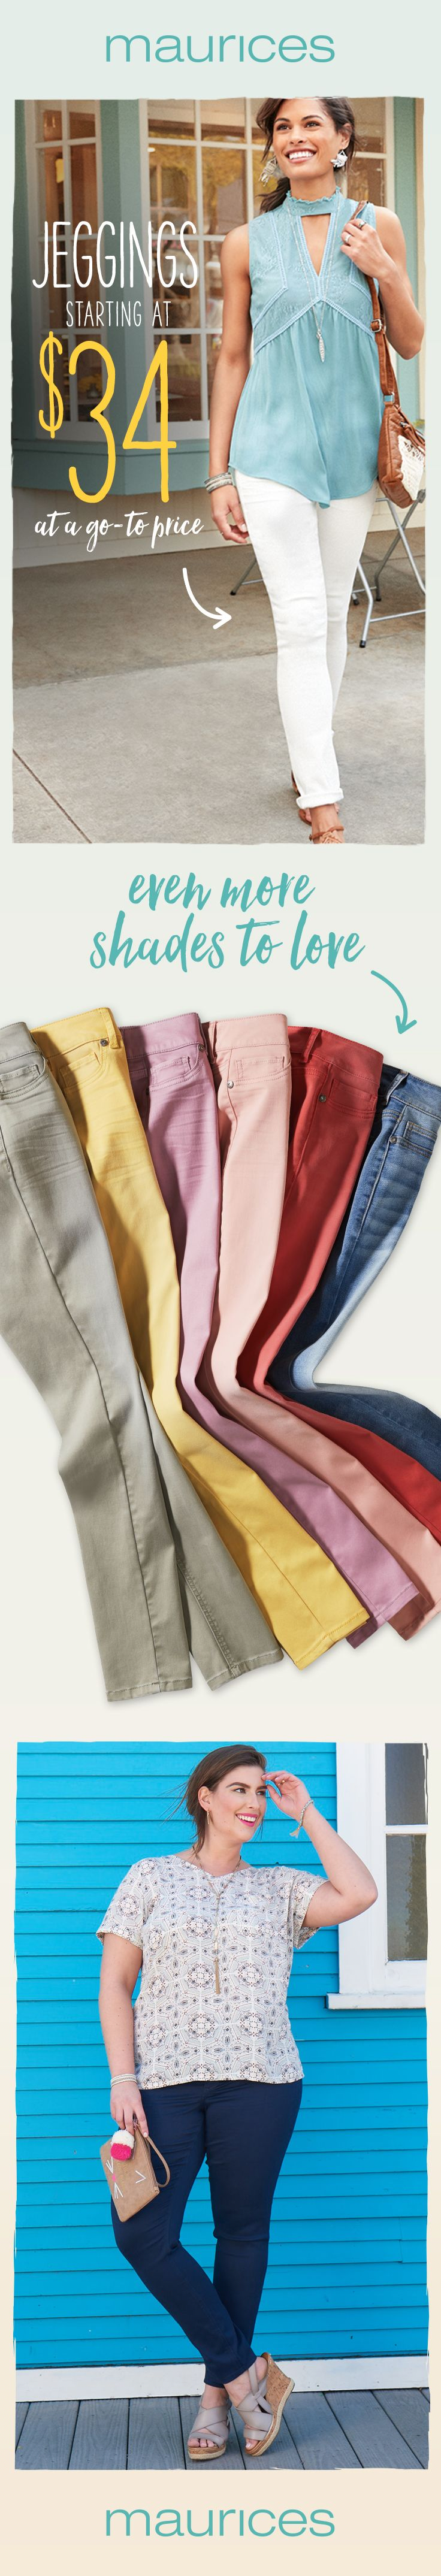 Brighten up with color jeggings starting at $34 – perfect for work, play or whatever comes your way. Plus, say hello to FREE shipping when you pick up in store or on orders $50 or more.